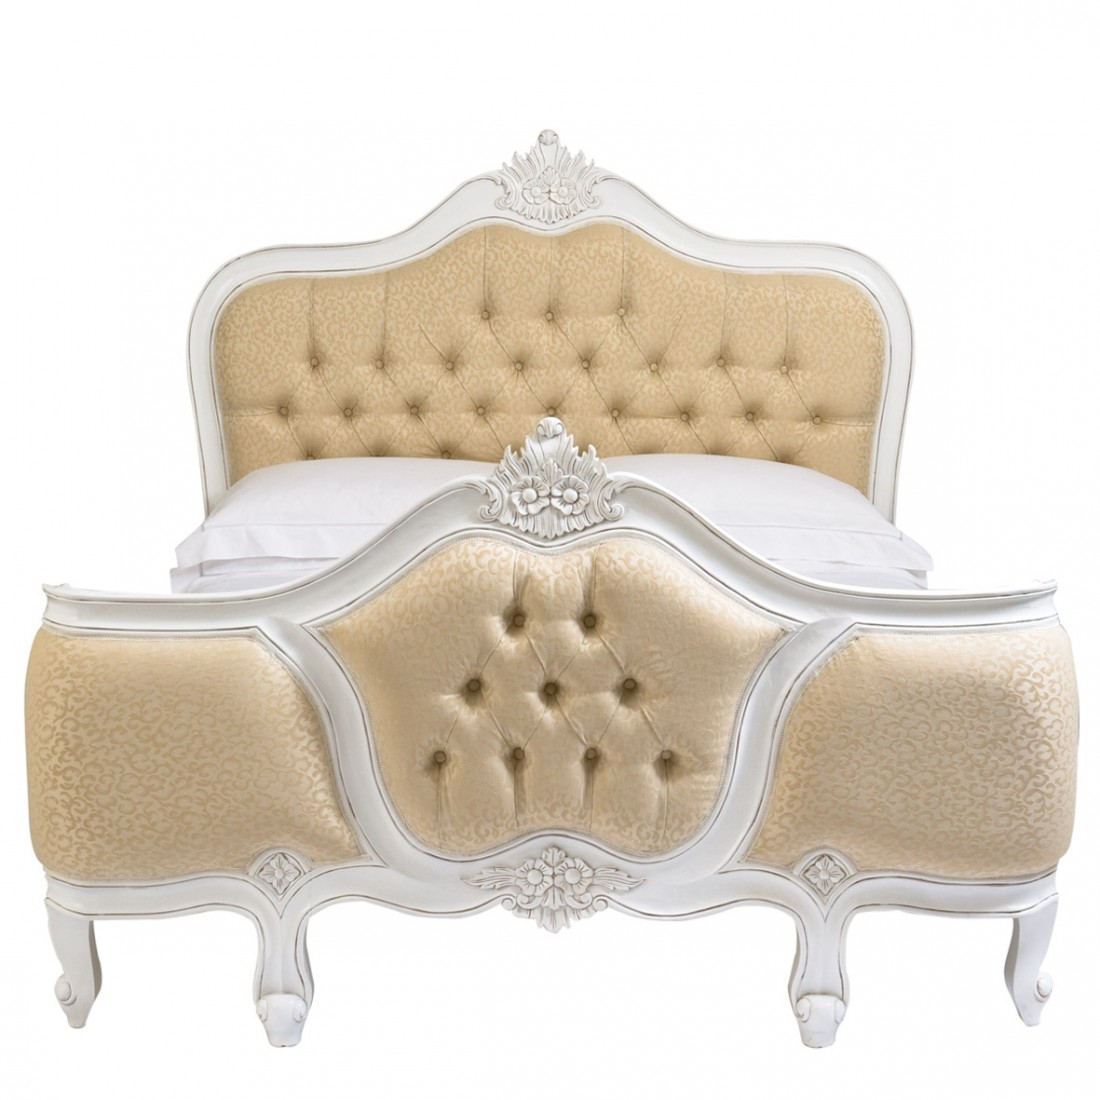 Shabby Chic Bedroom Accessories 5 Shabby Chic Furniture Items And Accessories For The Bedroom